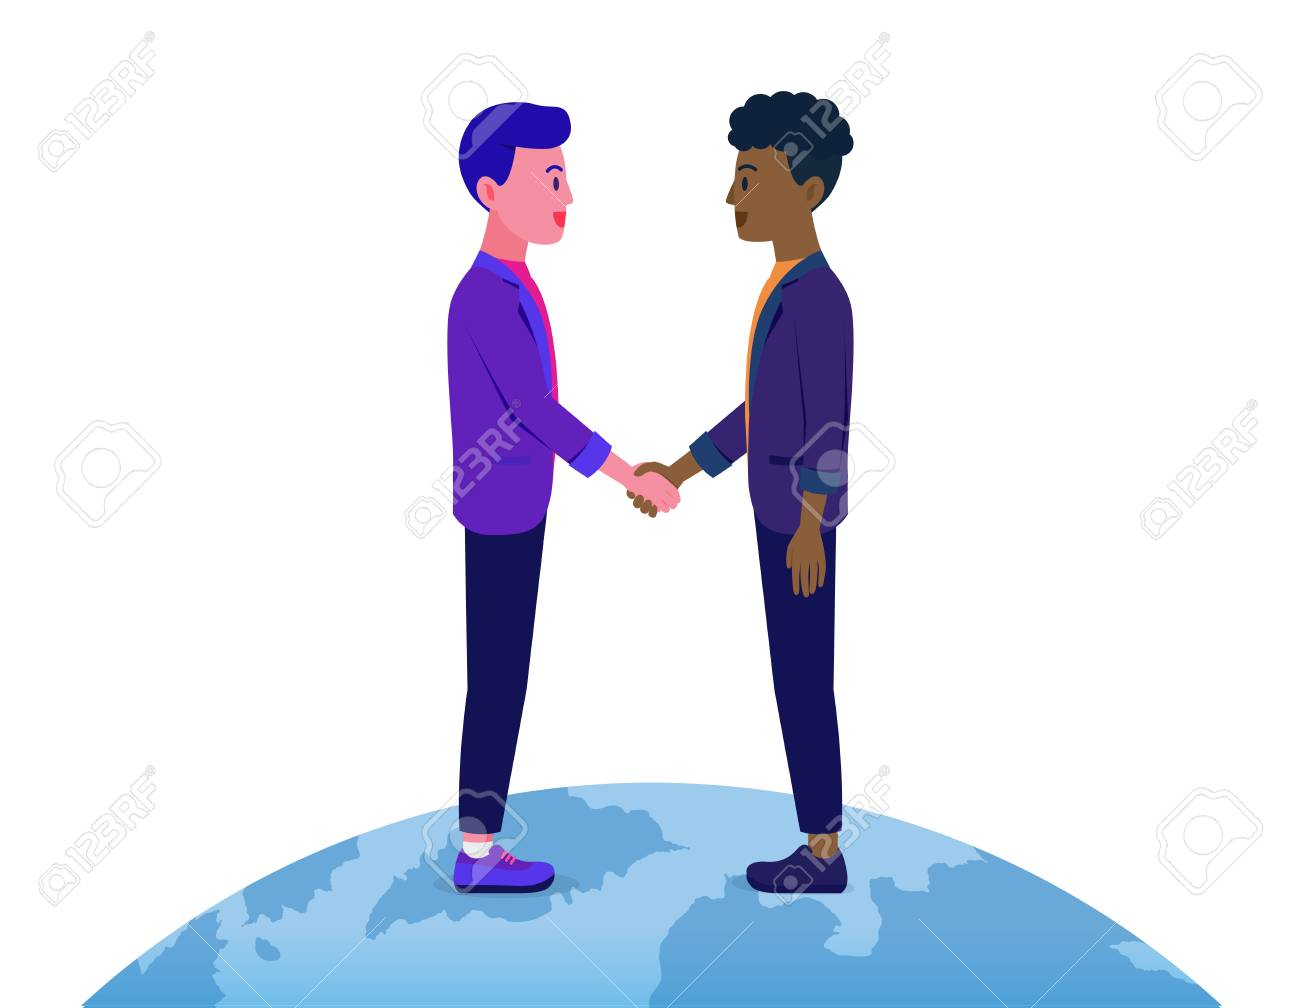 Businessman shaking hands with a man have different Skin color on the world. Illustration about business contract with another nationalist. - 110363751